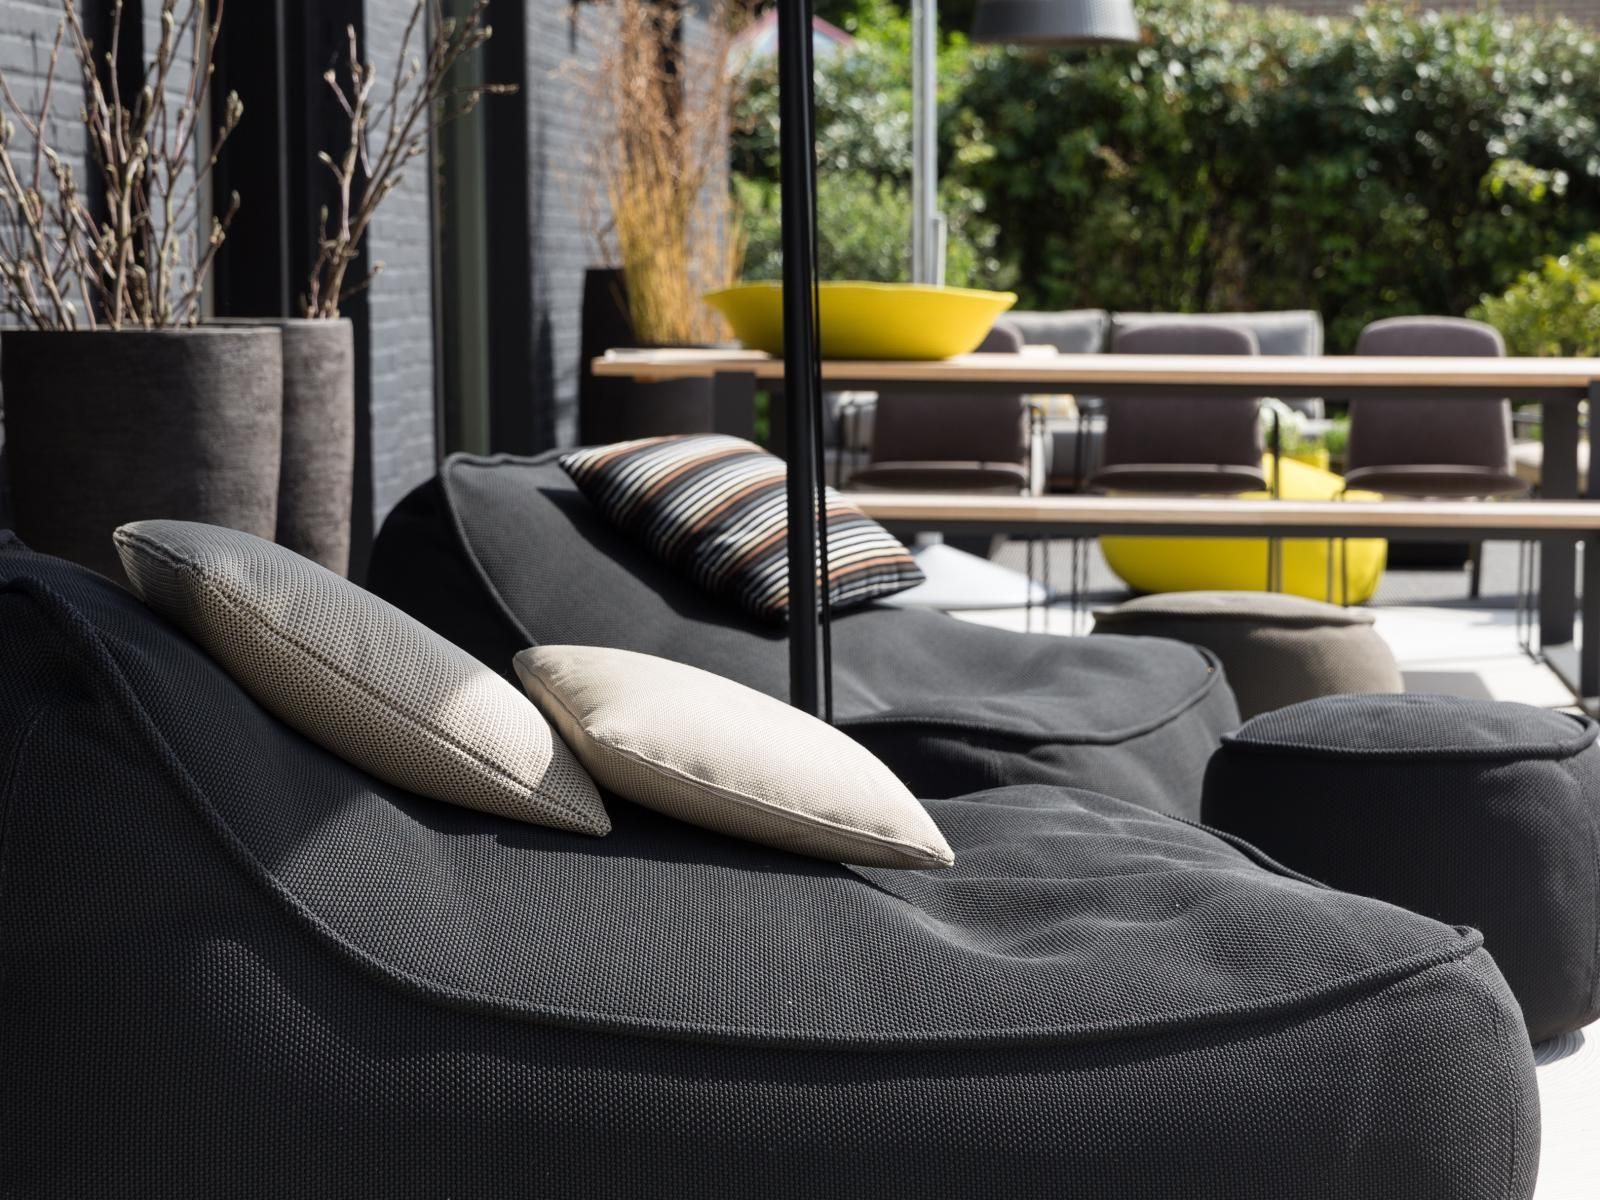 paola lenti float indoor - Pesquisa Google | my home | Pinterest ...